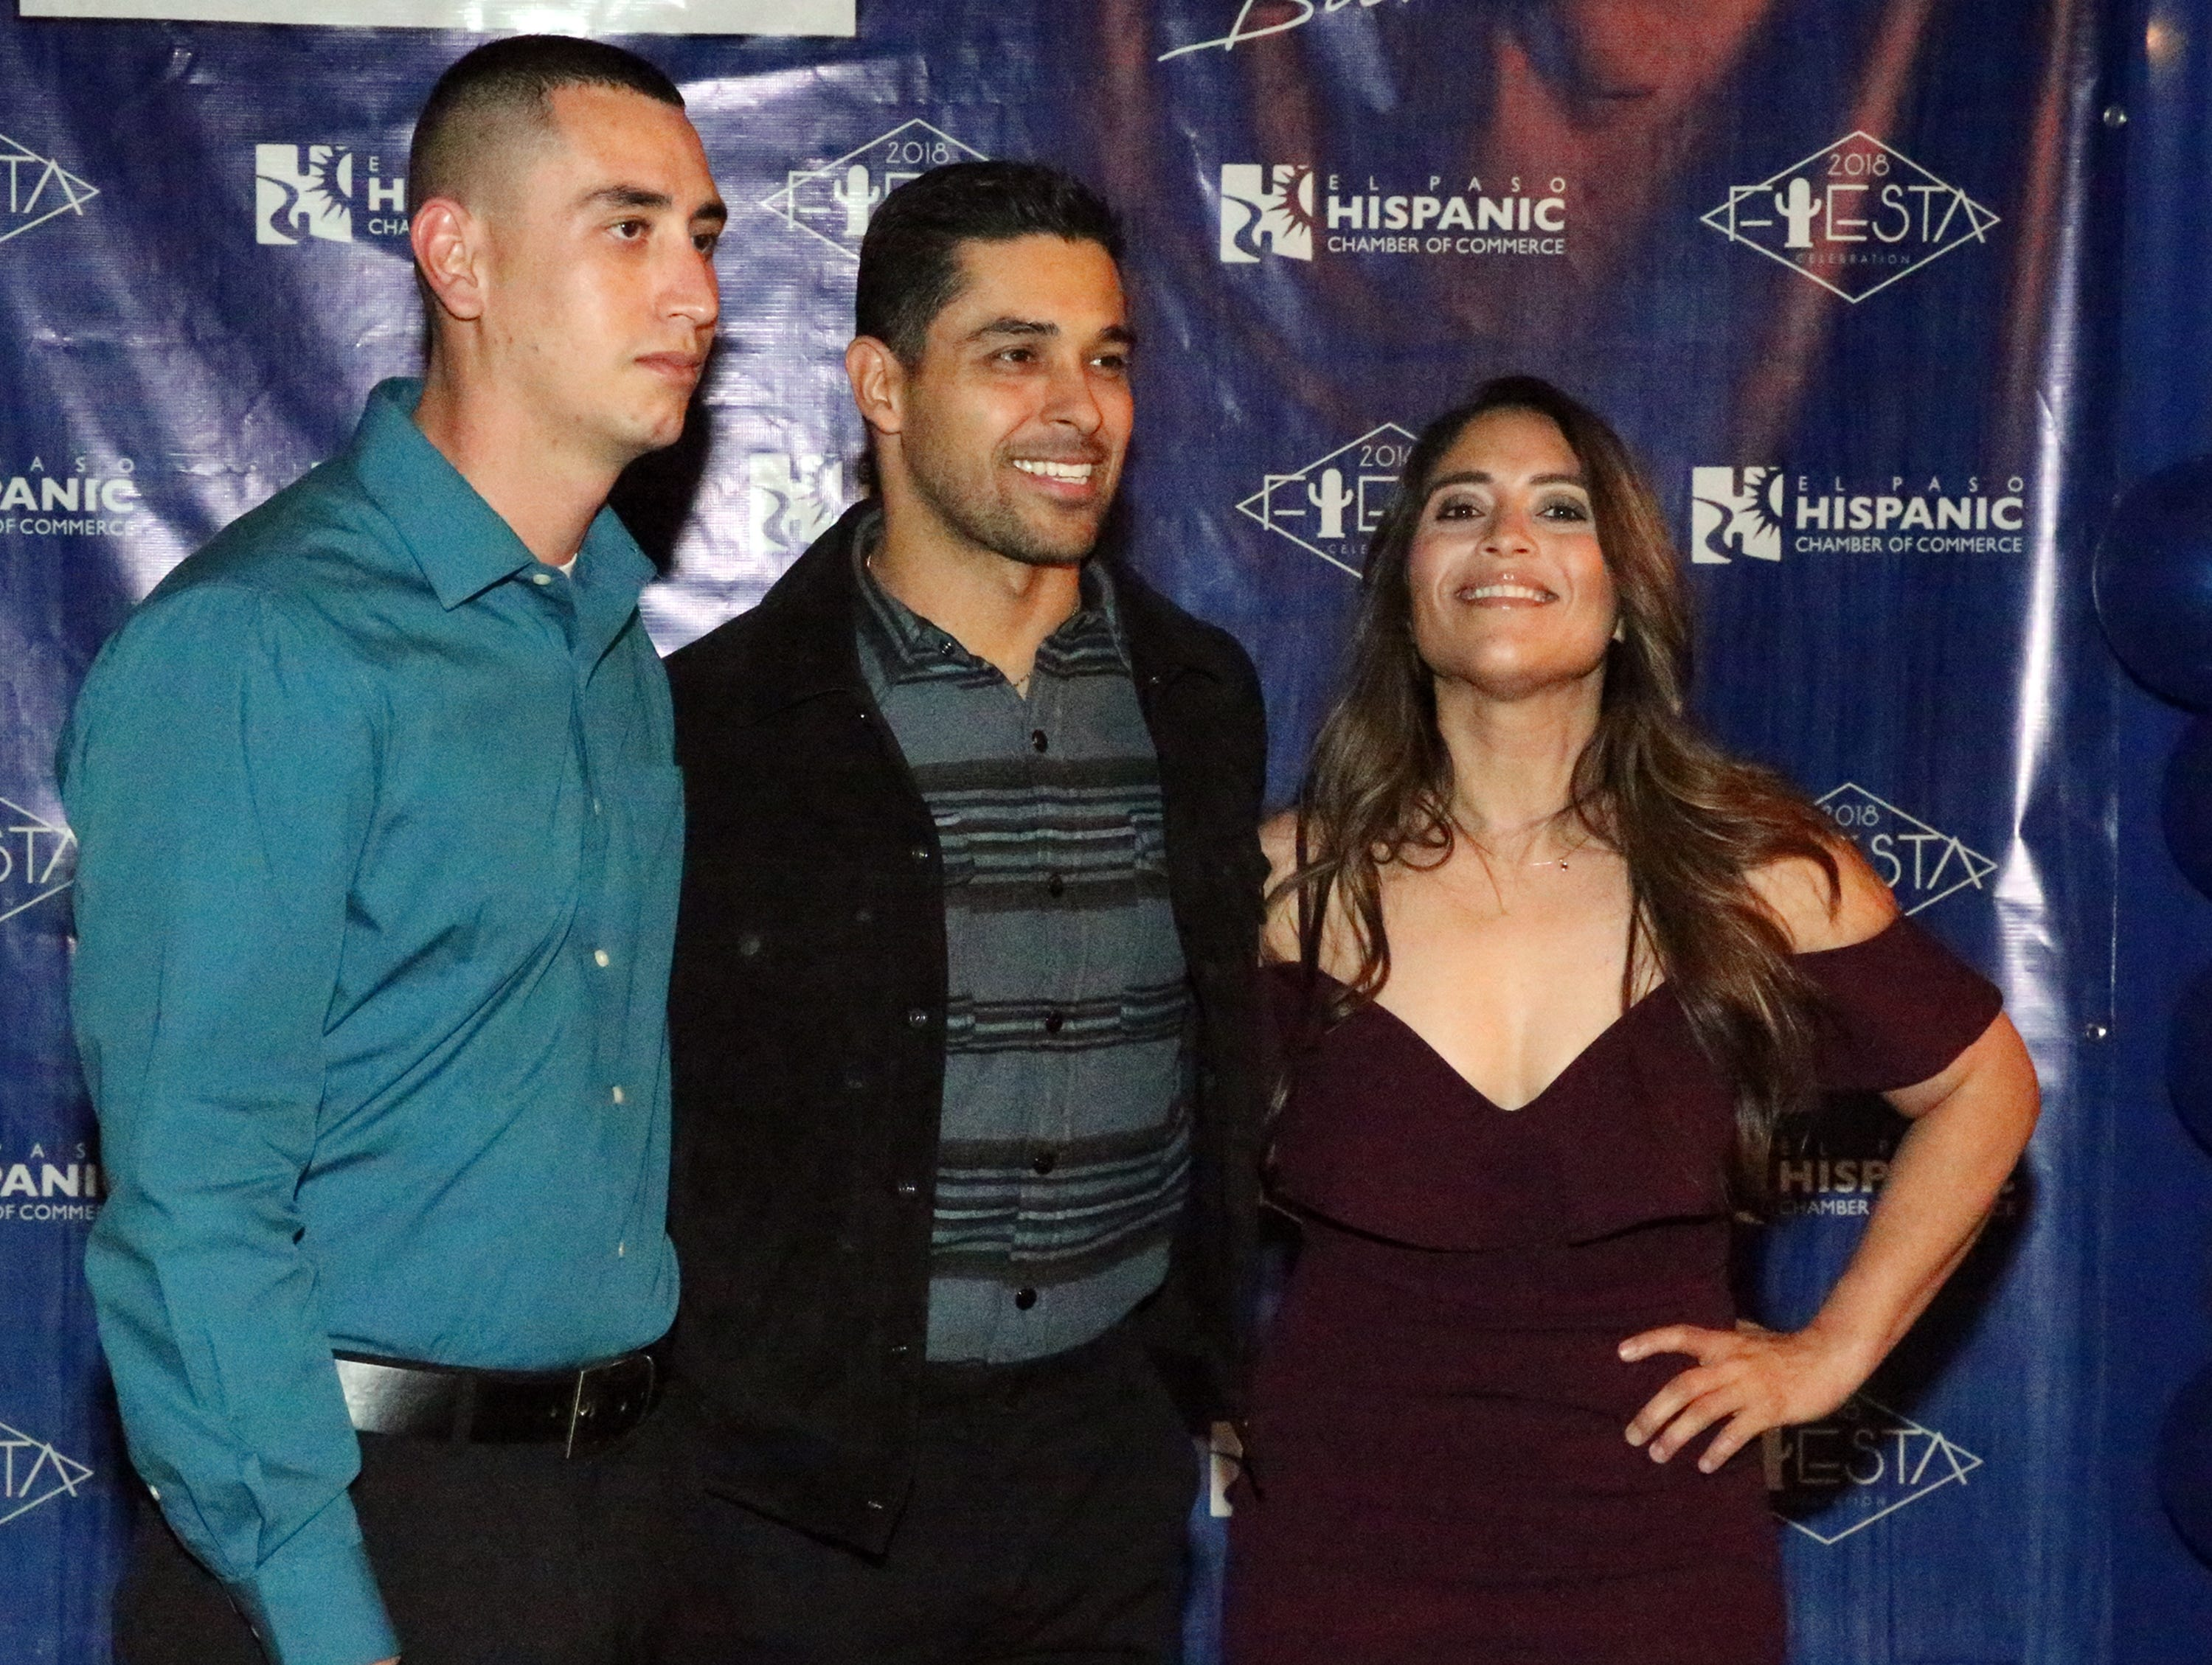 Cesar Jimenez, left, and Samira Hernandez, right, pose with actor/producer Wilmer Valderrama Saturday.